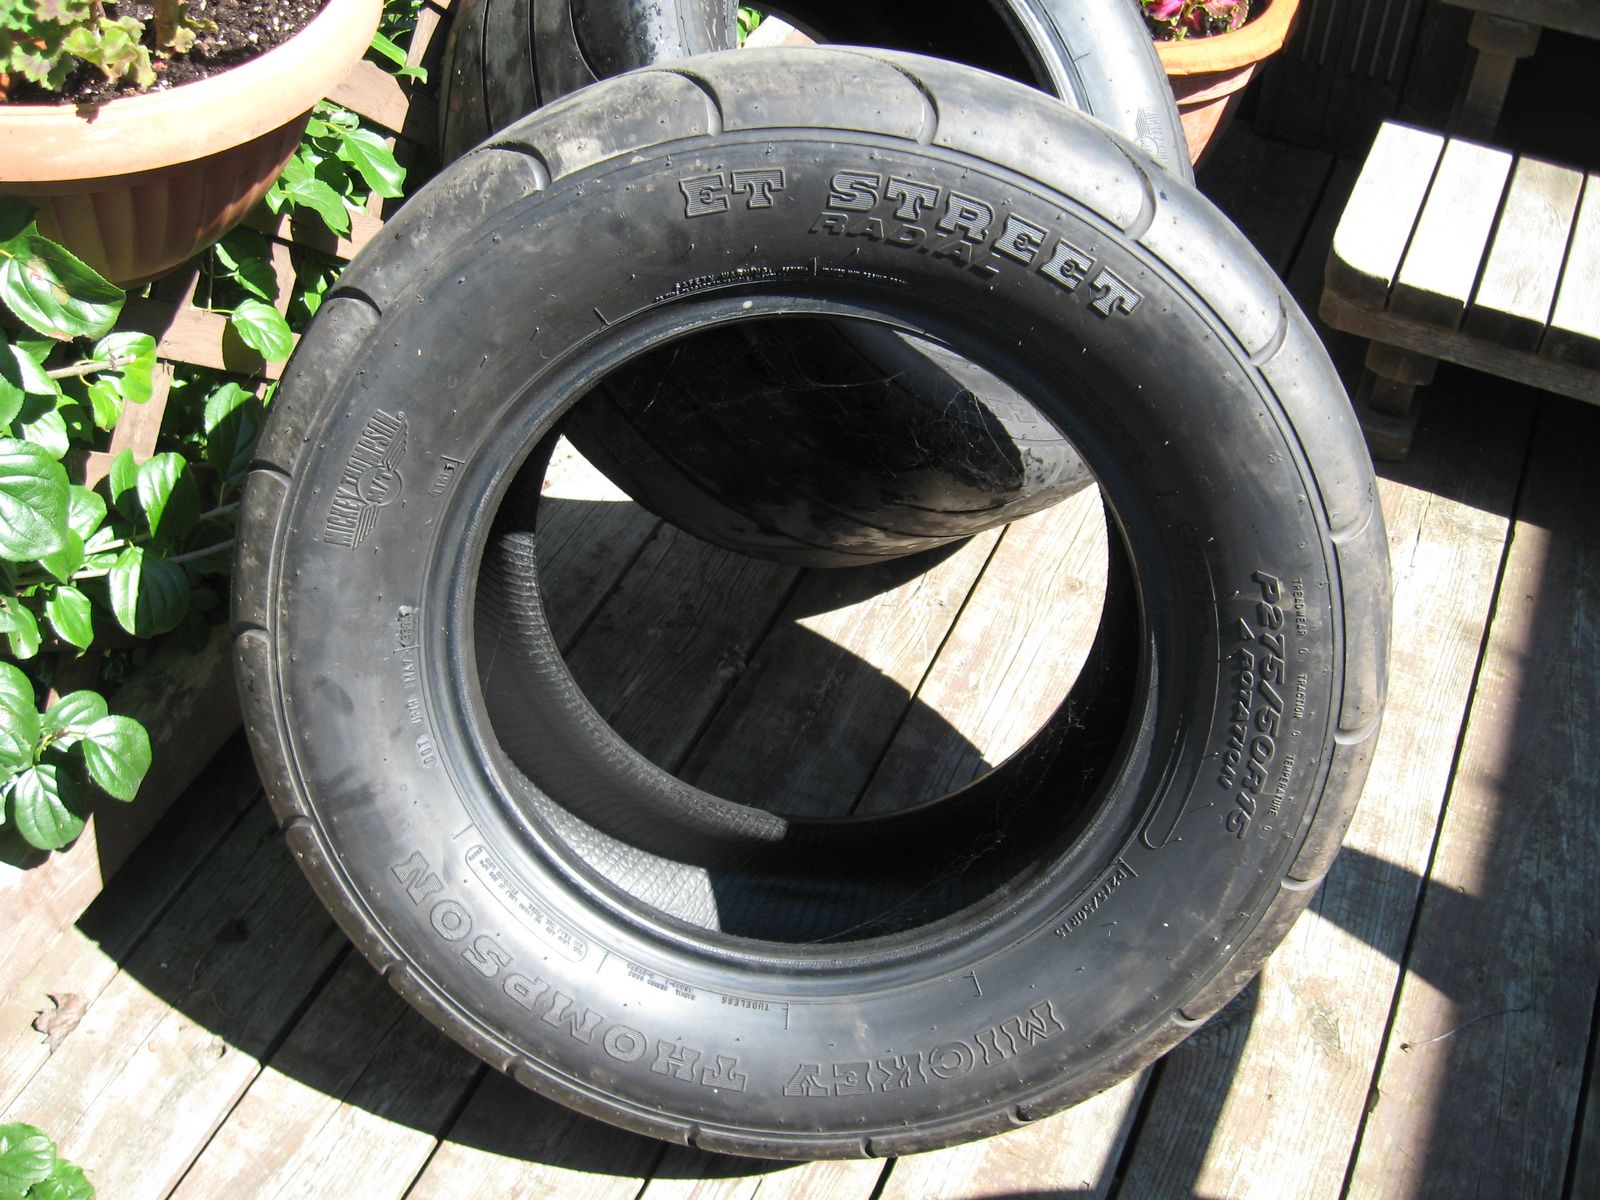 Drag radials for sale -  M T Drag Radials Sale Tn_picture 005 Jpg